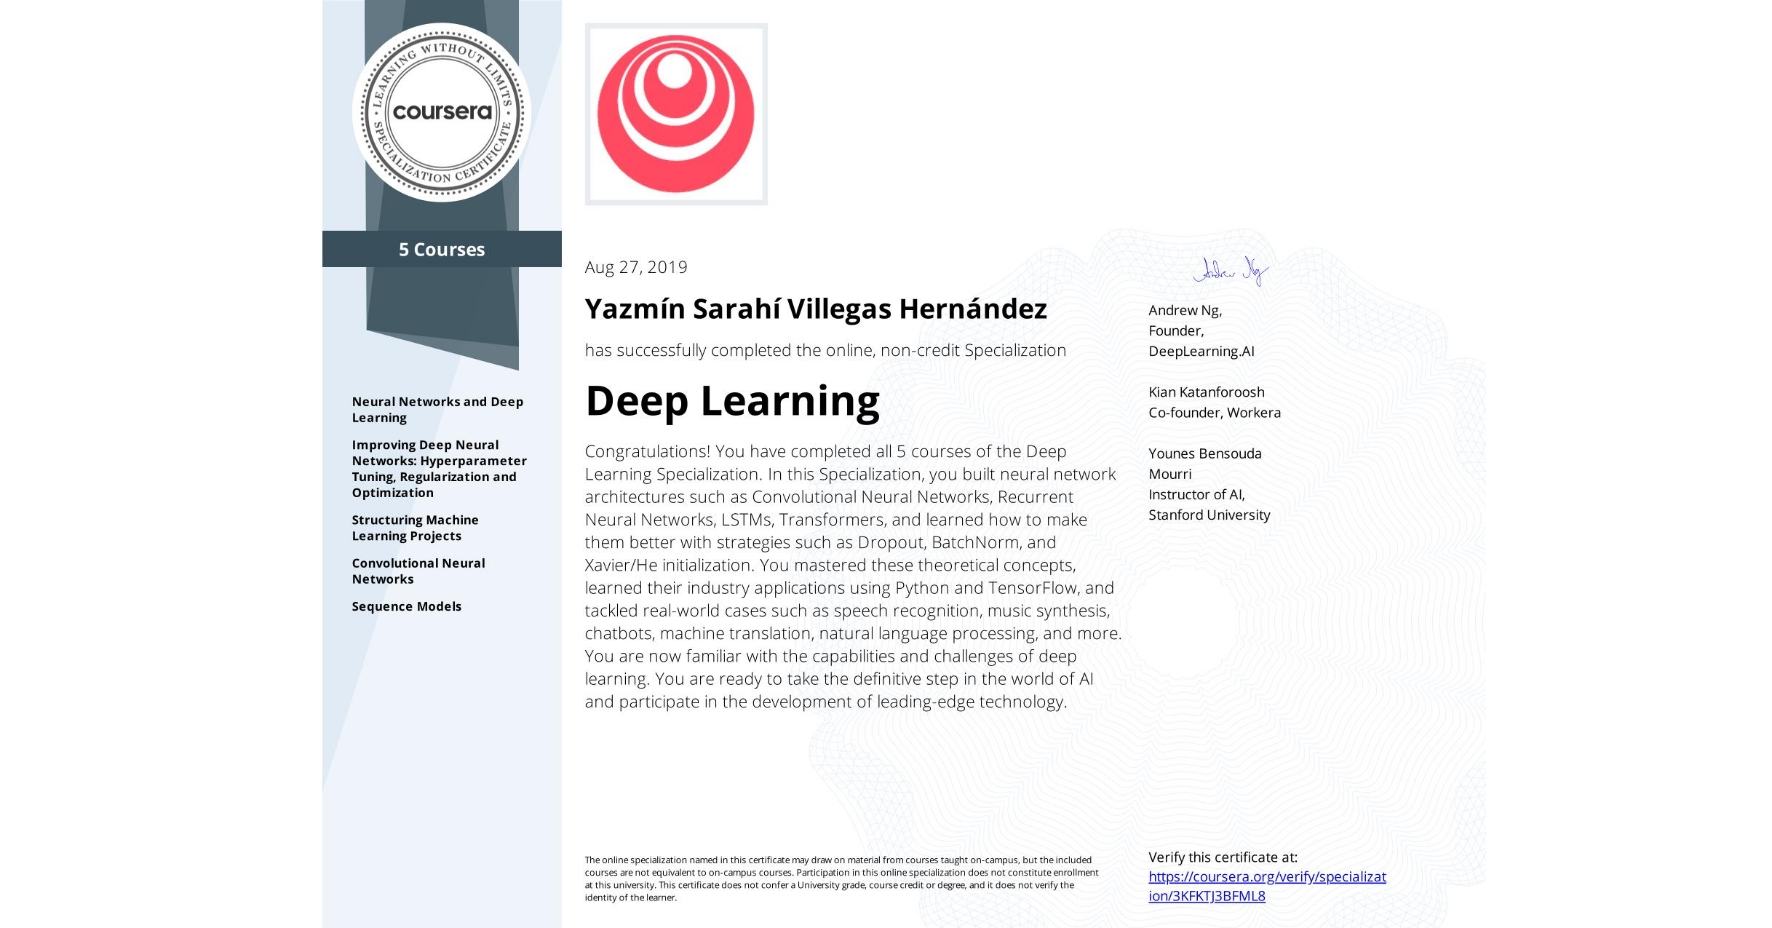 View certificate for Yazmín Sarahí Villegas Hernández, Deep Learning, offered through Coursera. Congratulations! You have completed all five courses of the Deep Learning Specialization.  In this Specialization, you built neural network architectures such as Convolutional Neural Networks, Recurrent Neural Networks, LSTMs, Transformers and learned how to make them better with strategies such as Dropout, BatchNorm, Xavier/He initialization, and more. You mastered these theoretical concepts and their application using Python and TensorFlow and also tackled real-world case studies such as autonomous driving, sign language reading, music generation, computer vision, speech recognition, and natural language processing.   You're now familiar with the capabilities, challenges, and consequences of deep learning and are ready to participate in the development of leading-edge AI technology.